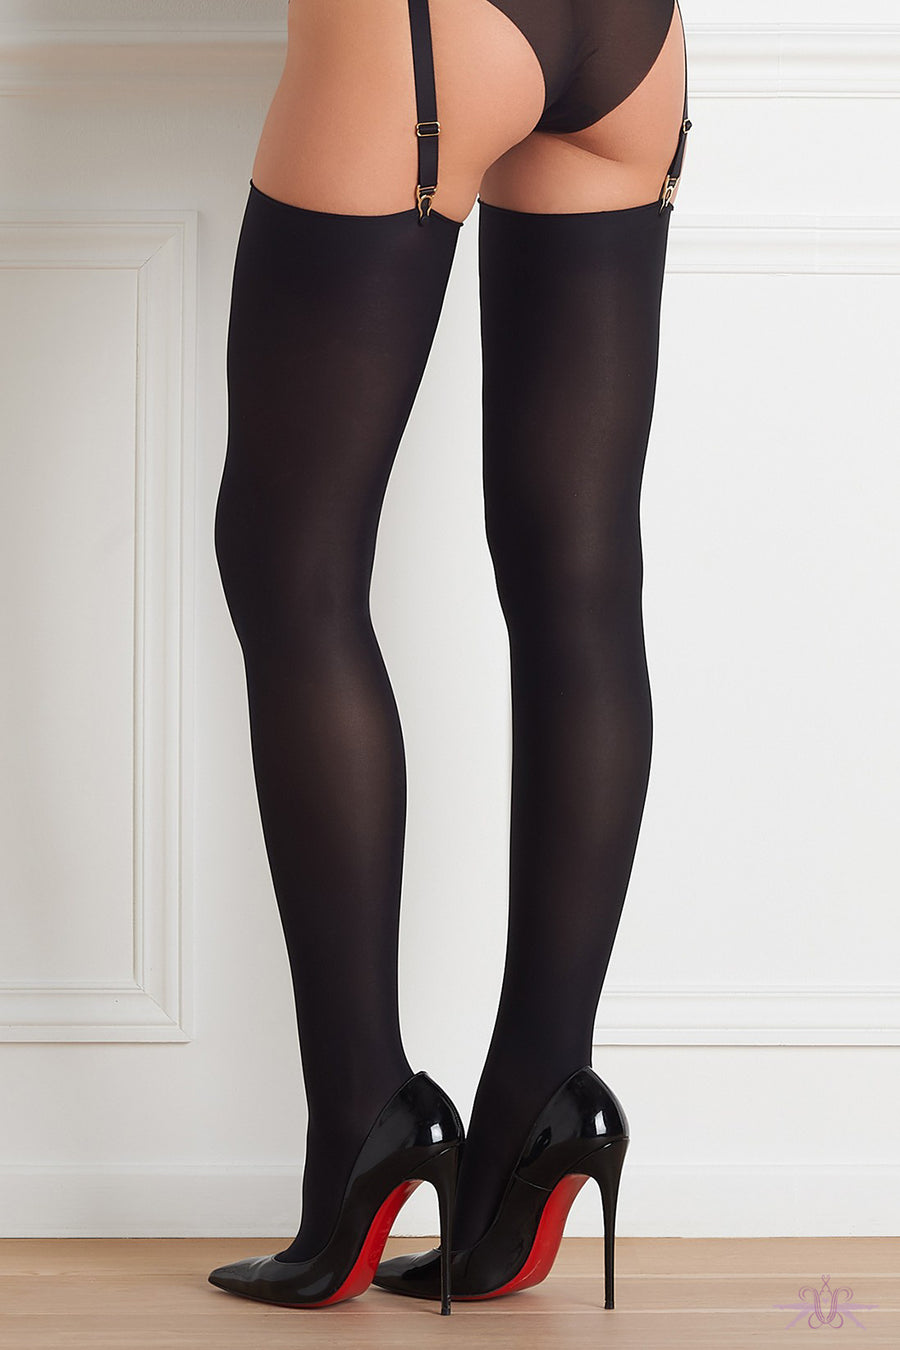 Maison Close Opaque Cut and Curled Stockings